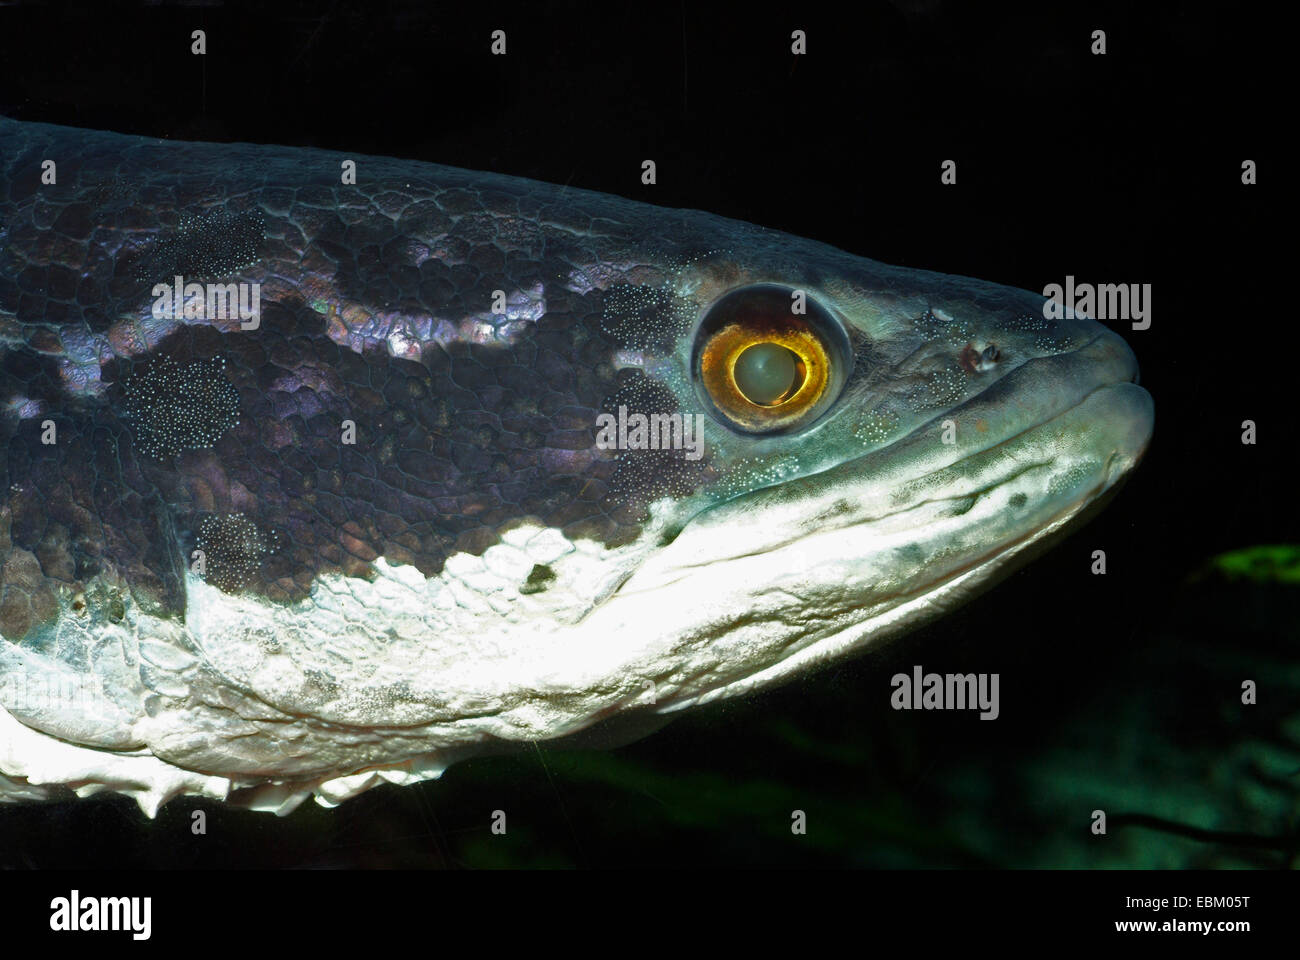 Spotted Snakehead (Channa argus argus), portrait - Stock Image